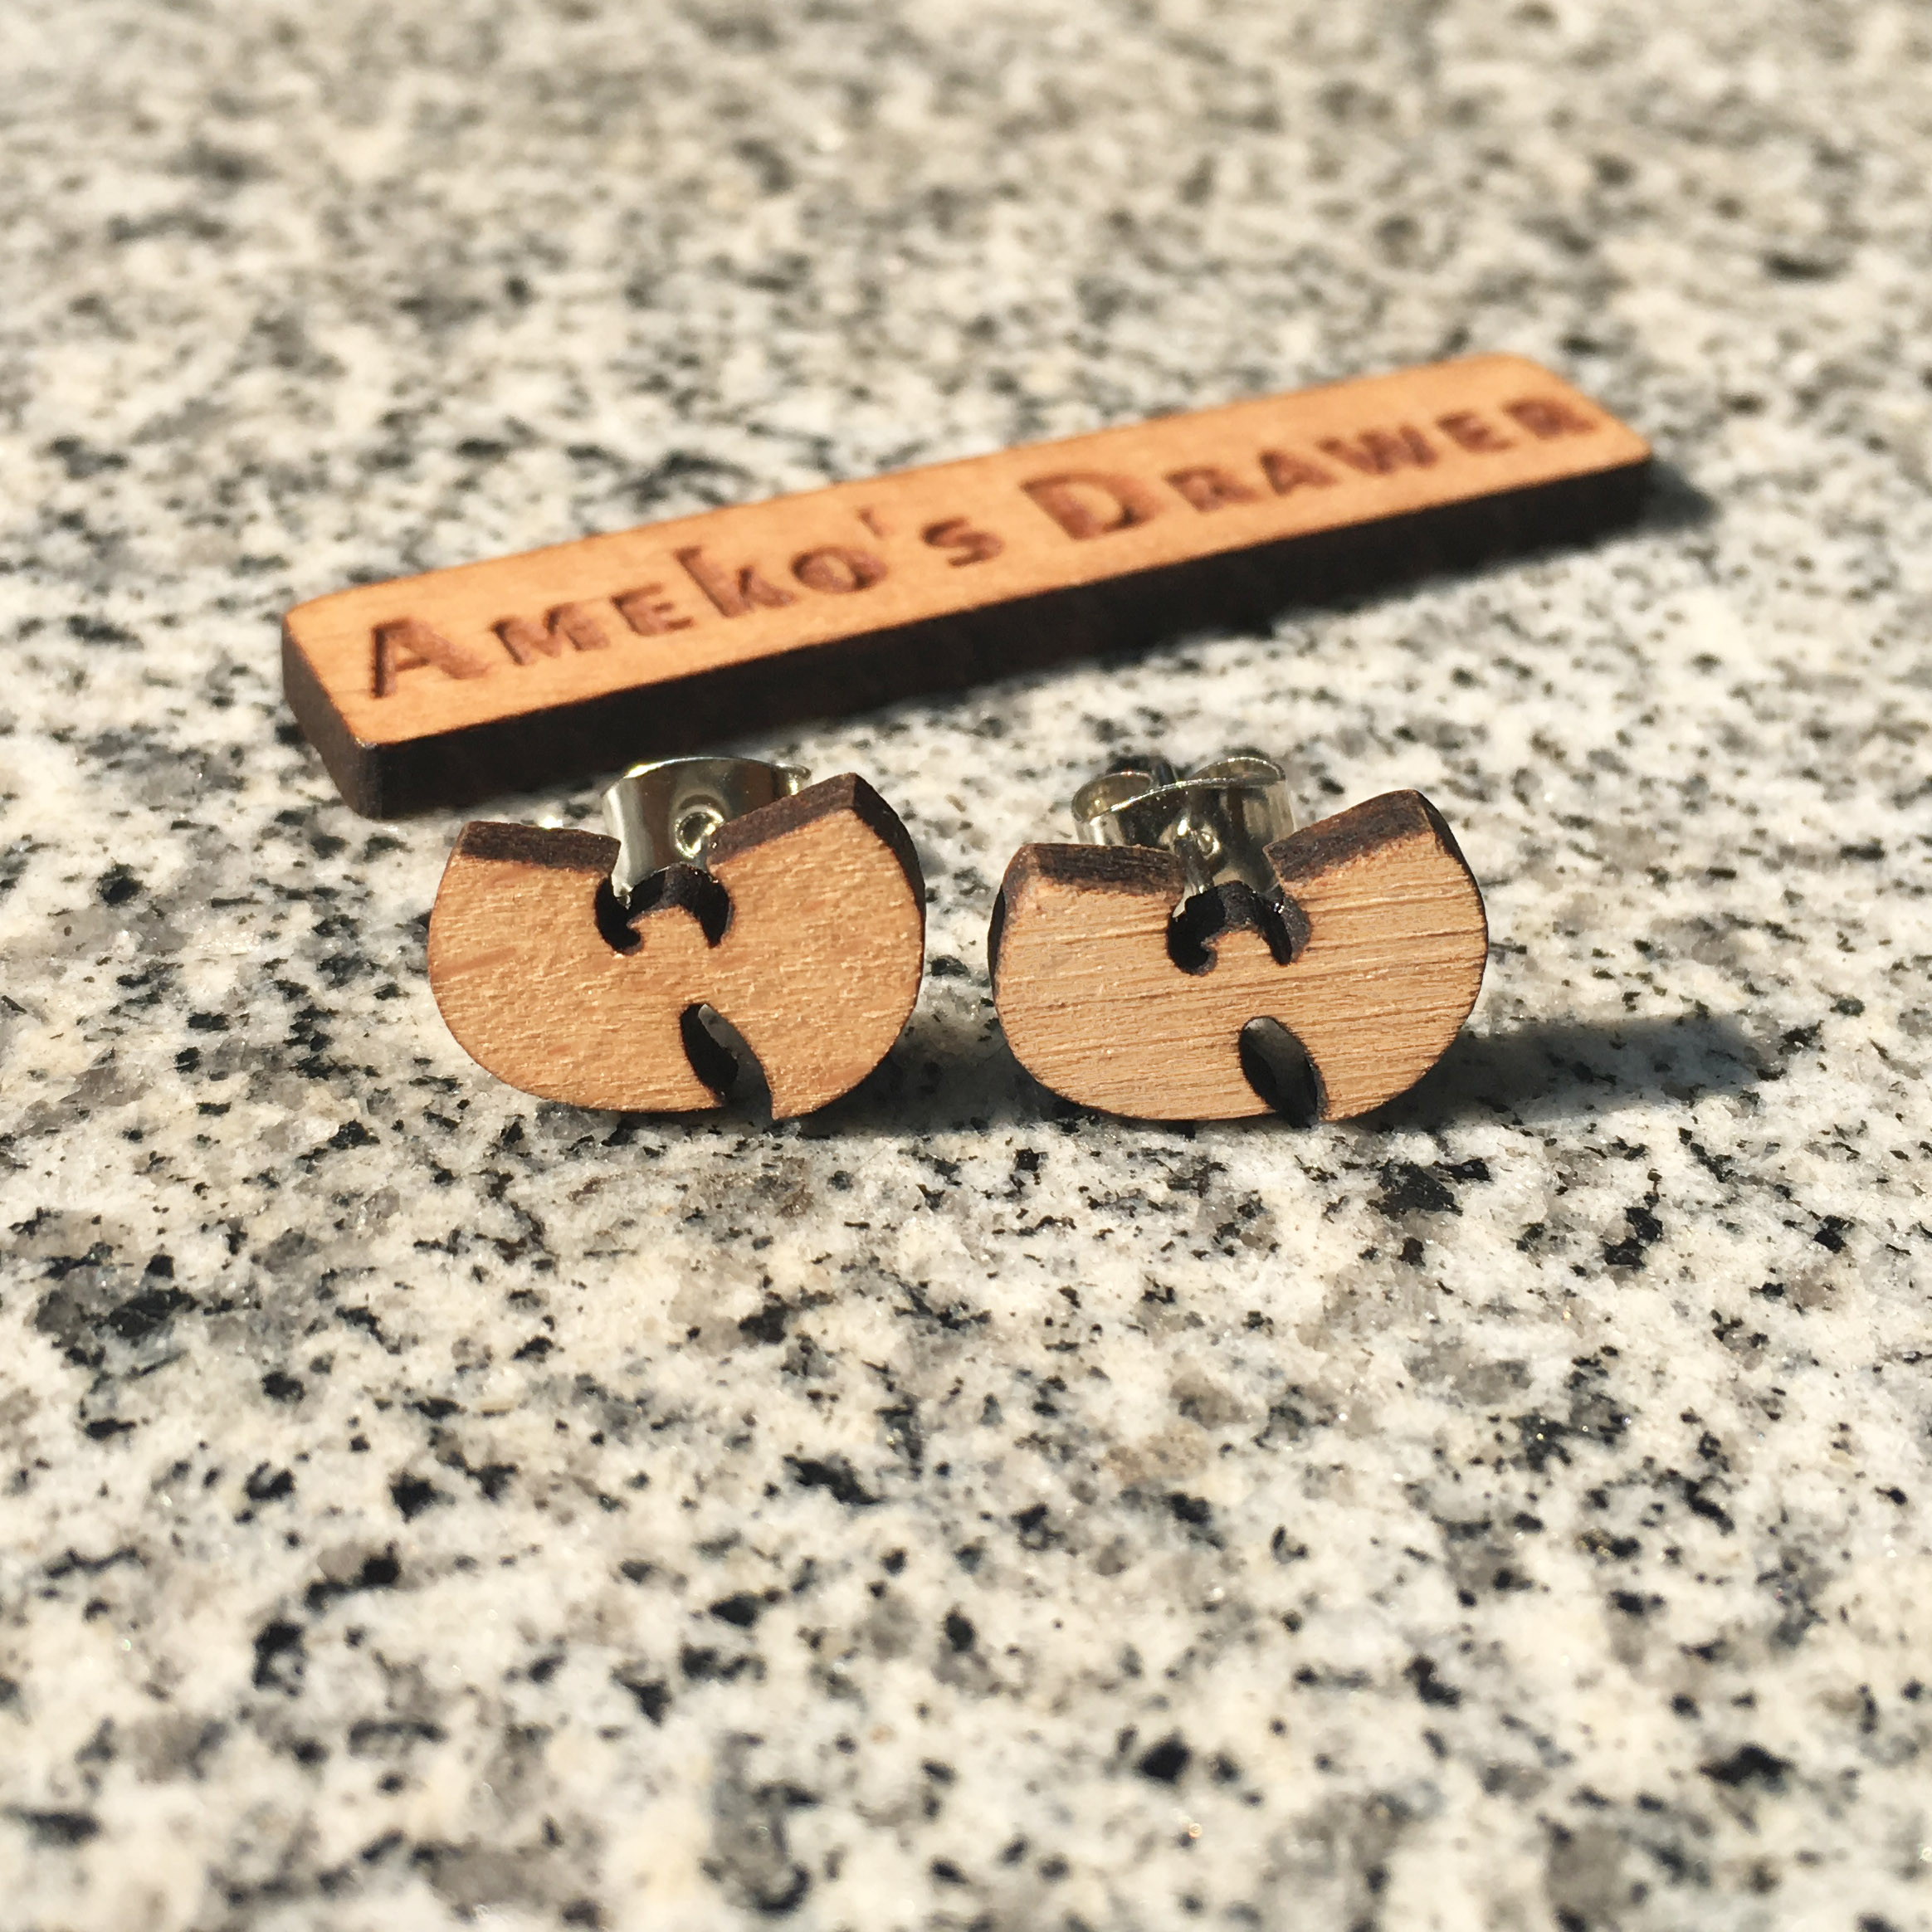 Ambitious Wu-tang Clan Earring Laser Engraved Hip Hop Earrings Music Stud Super Star Wooden Earring Handmade Earring X 10 Pairs